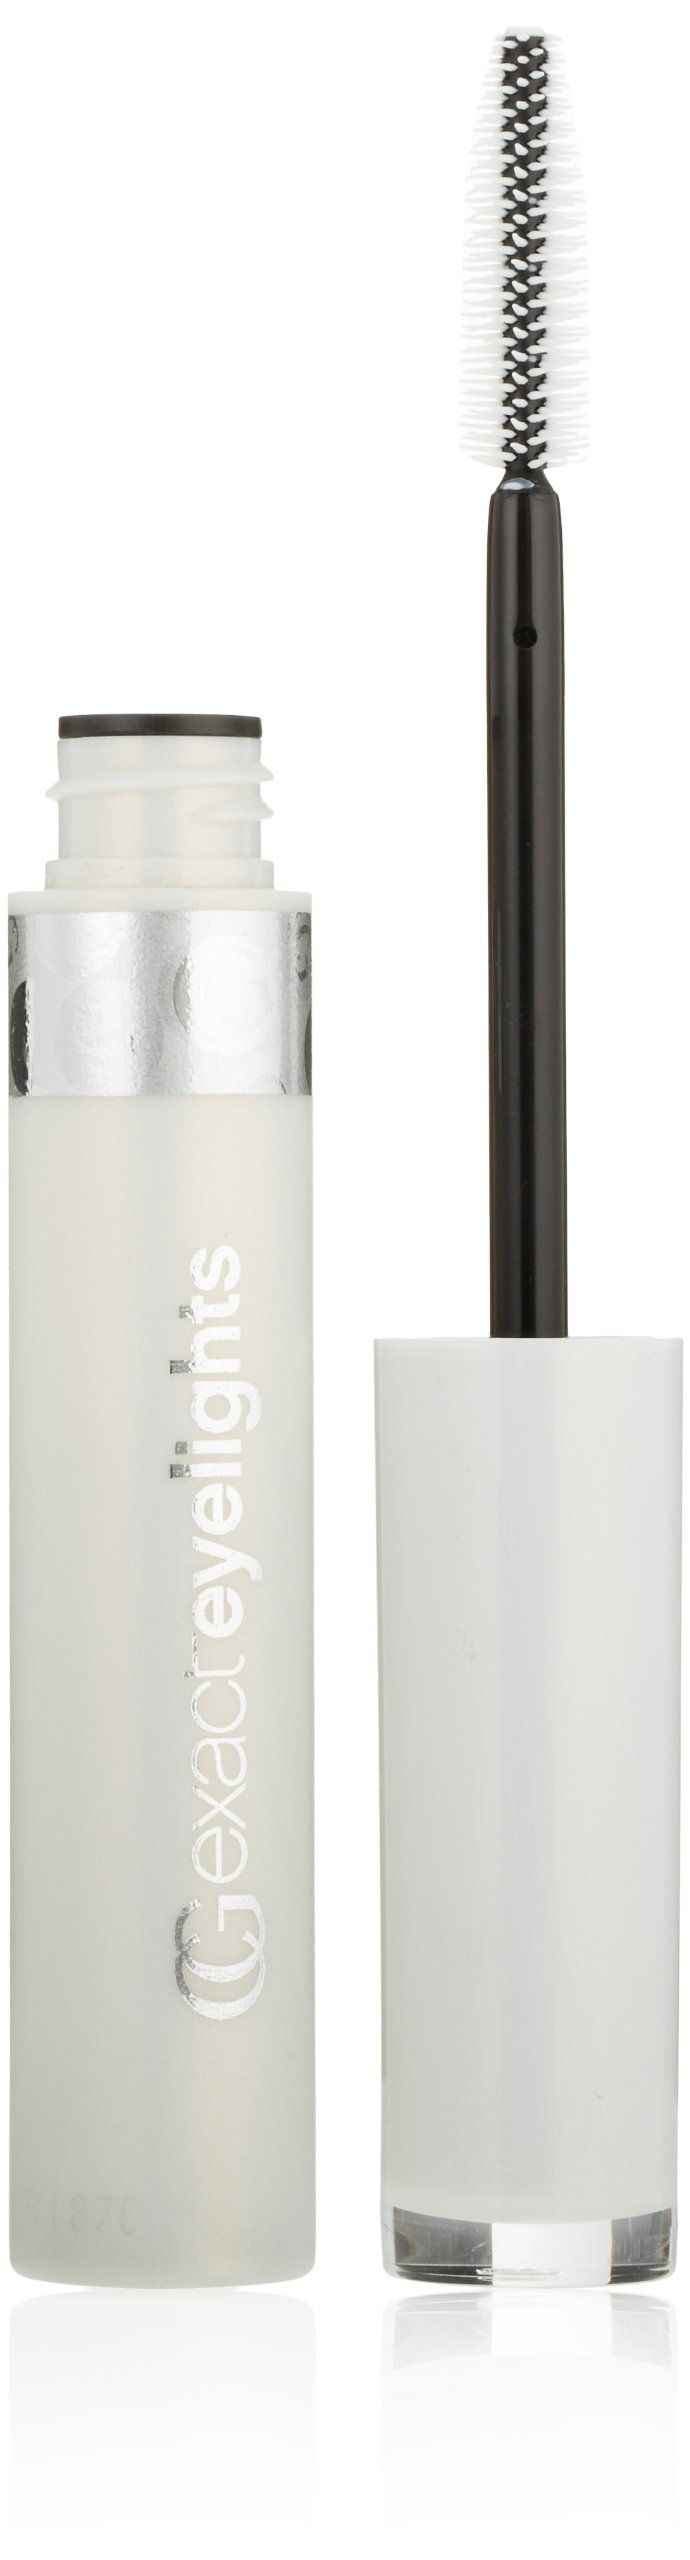 CoverGirl Exact EyeLights Regular Mascara, Black Sapphire 710 (for Blue Eyes), 0.24-Ounce Packages (Pack of 3). Get 4X Brighter Eyes vs. bare lashes. Unique mascara formula with micro-color spheres & metallics specially designed to reflect your eye color. No-clump exact brush. Helps brighten the look of your eye color. Four eyelighting shades - for blues, browns, hazels and greens.